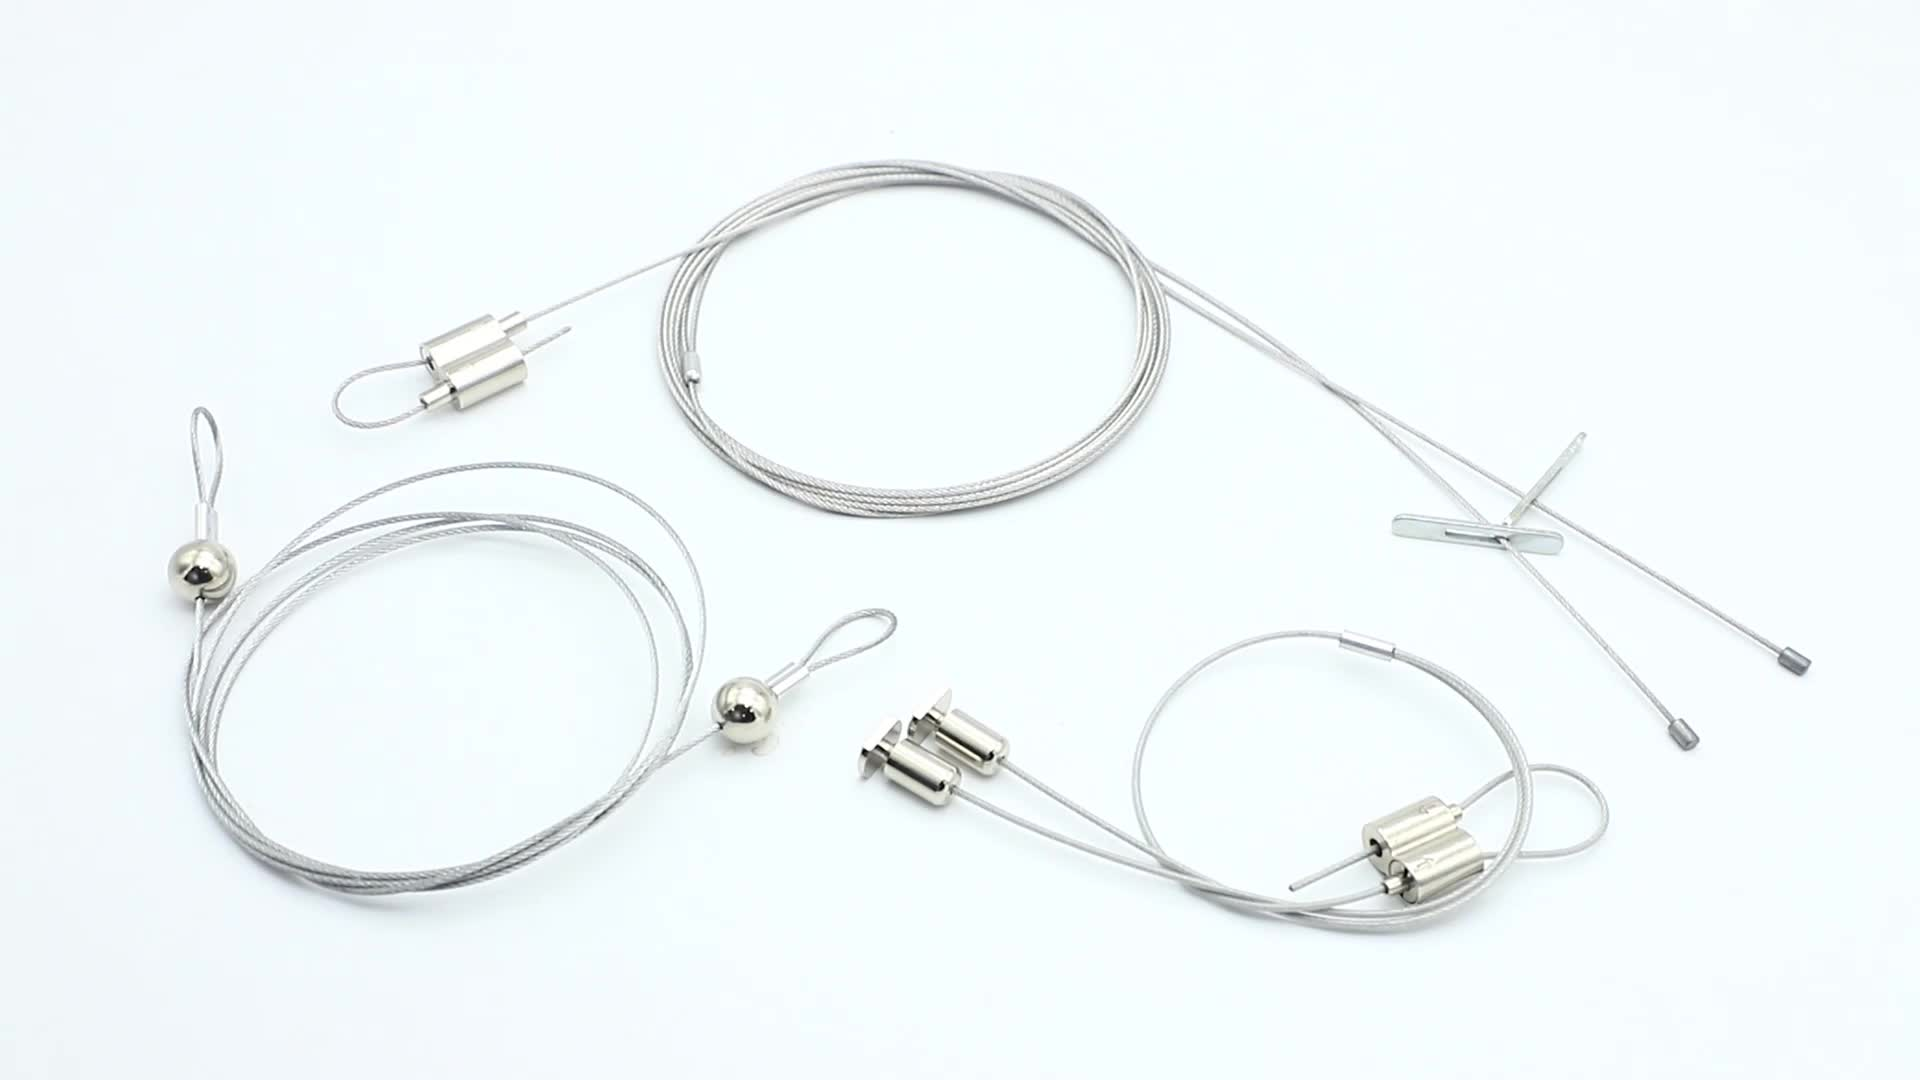 Attractive decoration suspension stainless wire sling for led grow lighting remote lighting lifter